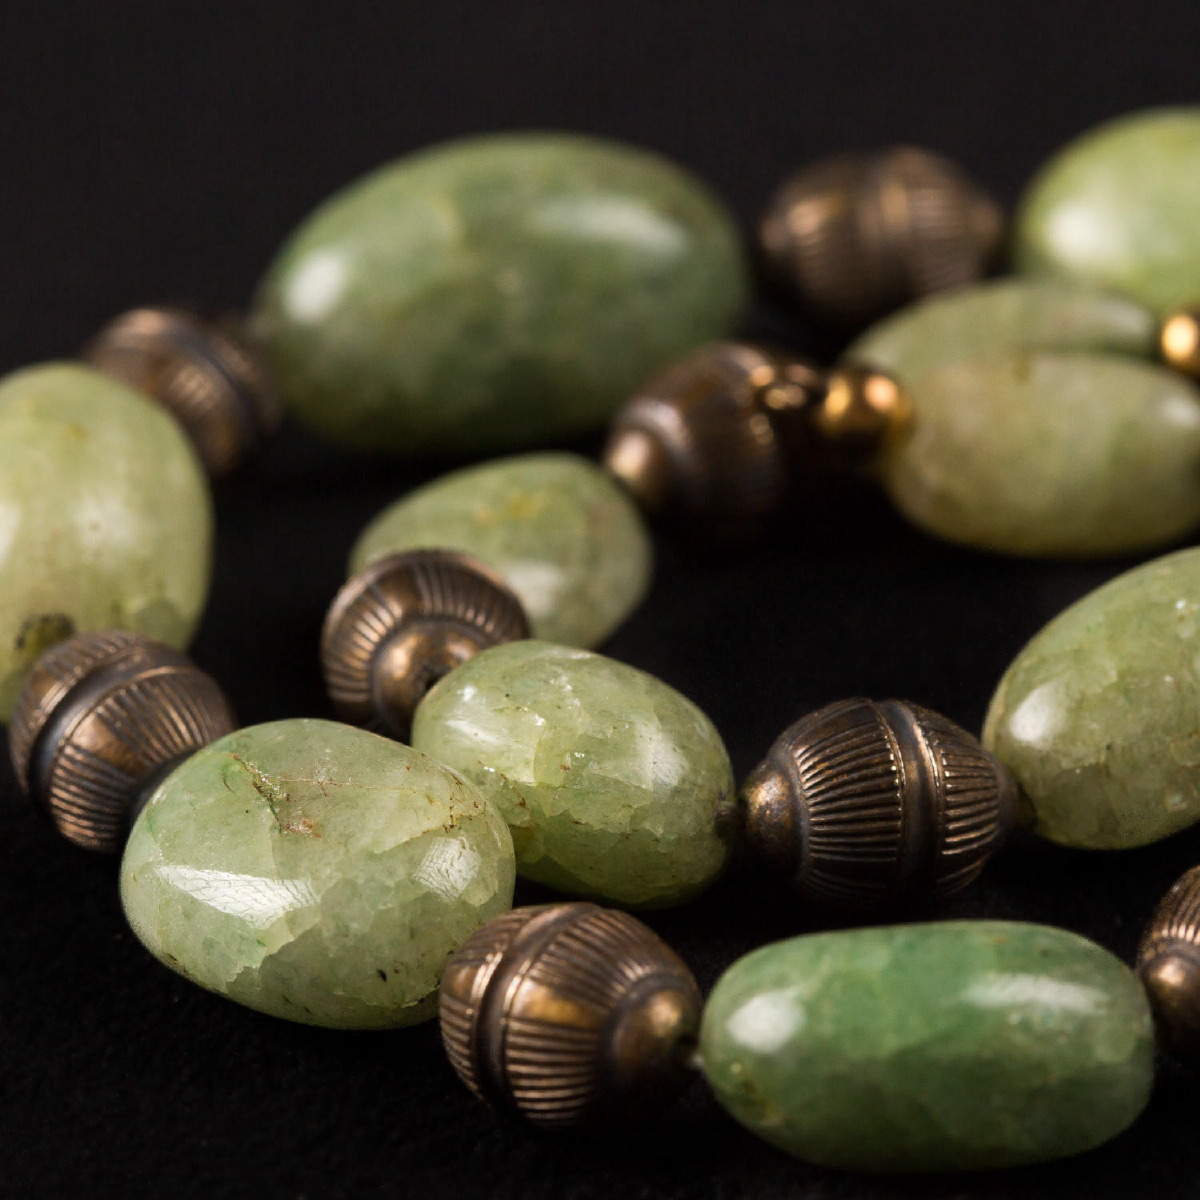 Photo of rare-olivine-necklace-ancient-egypt-metropolitan-museum-museum-of-man